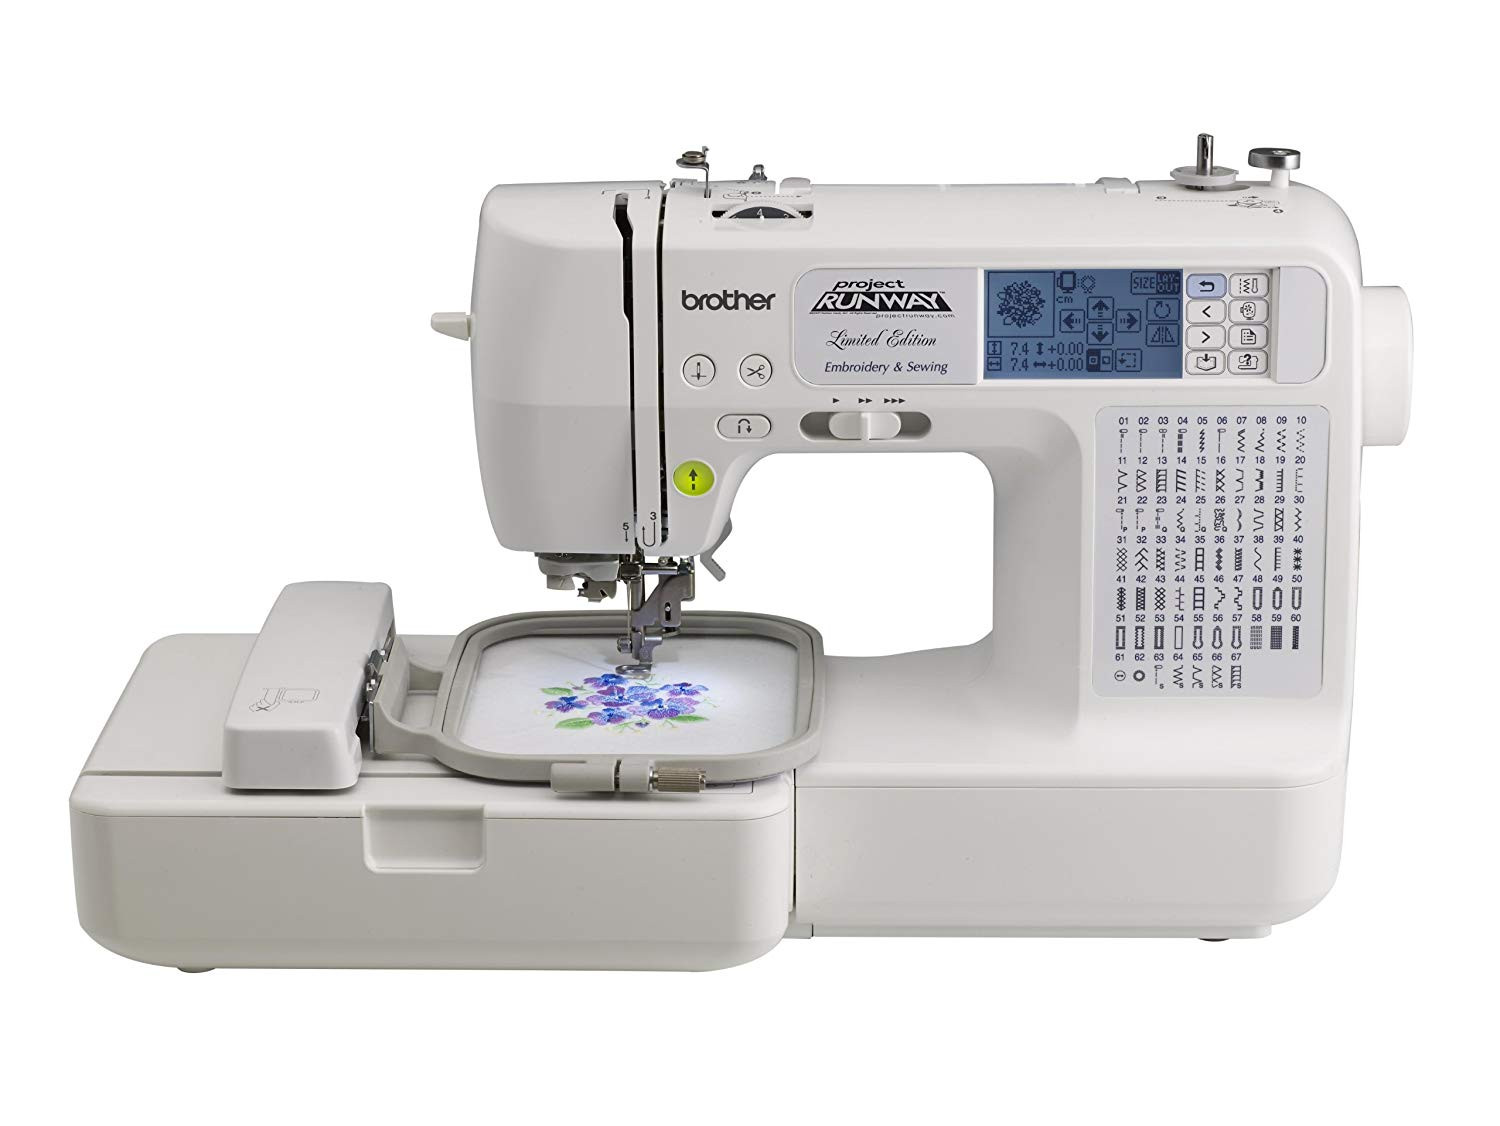 Used Embroidery Machines Awesome Used Embroidery Machines for Sale In India 9 Needles 23 Of Contemporary 41 Images Used Embroidery Machines